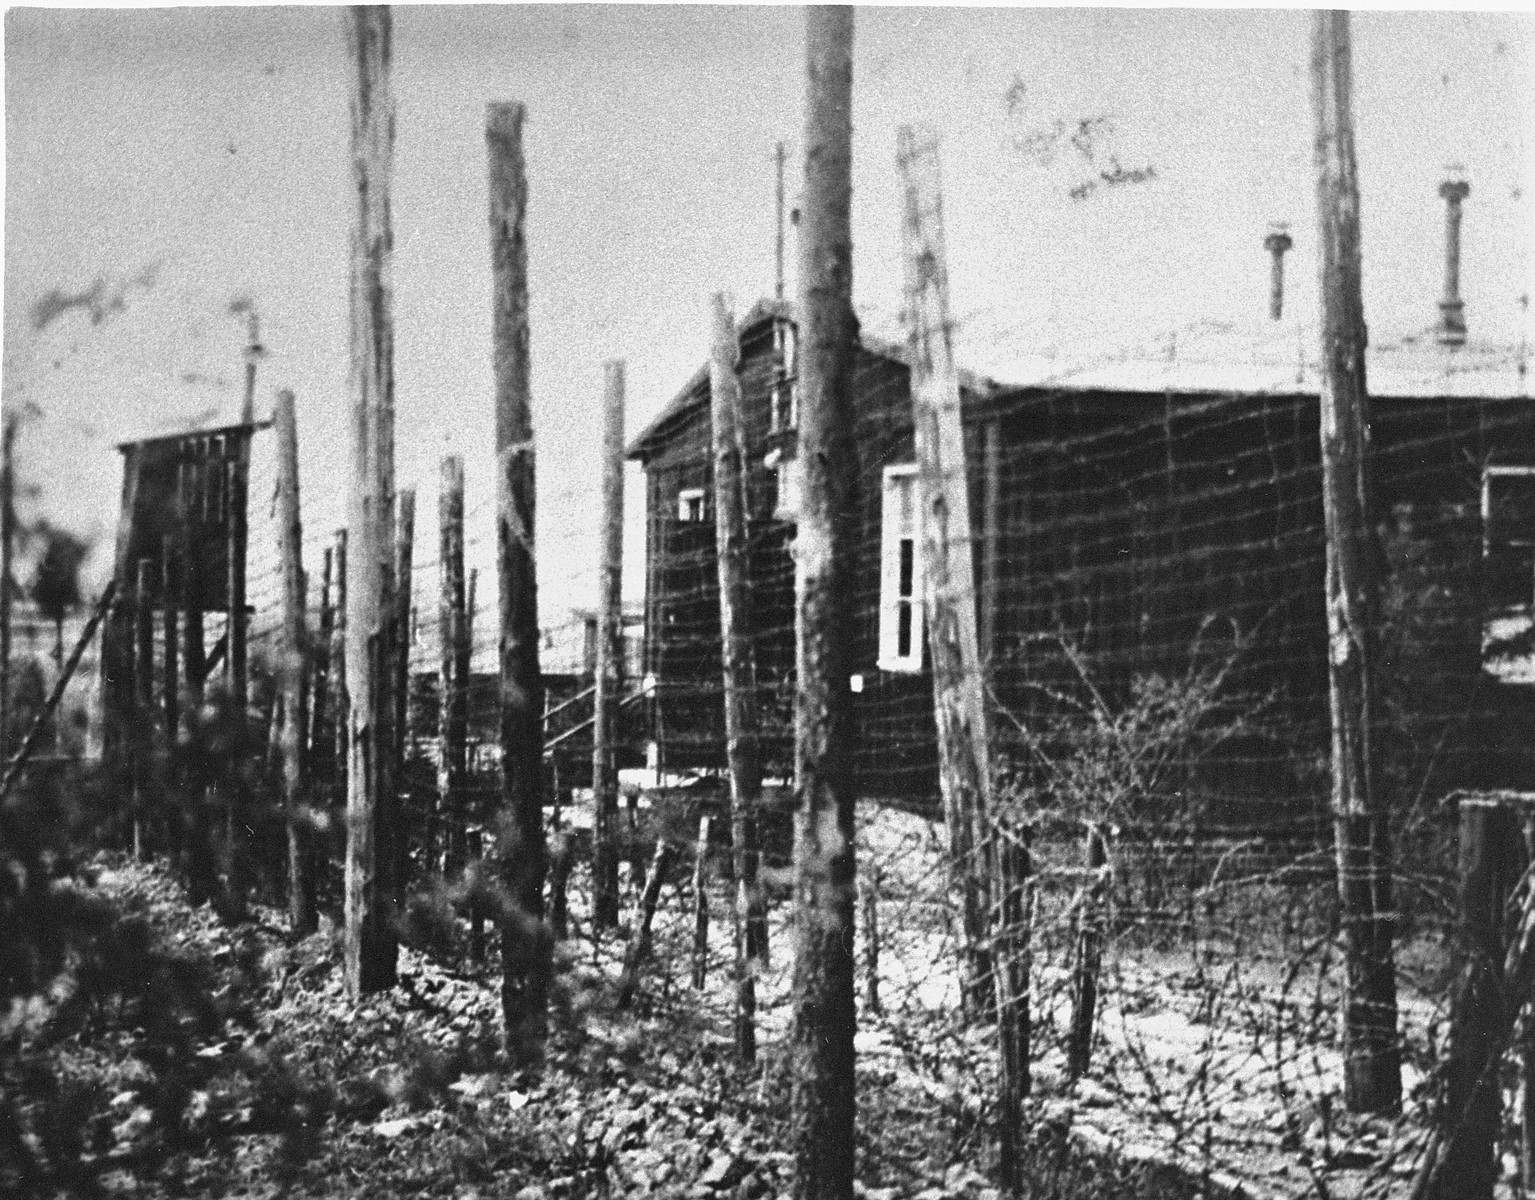 A section of the Ohrdruf concentration camp.